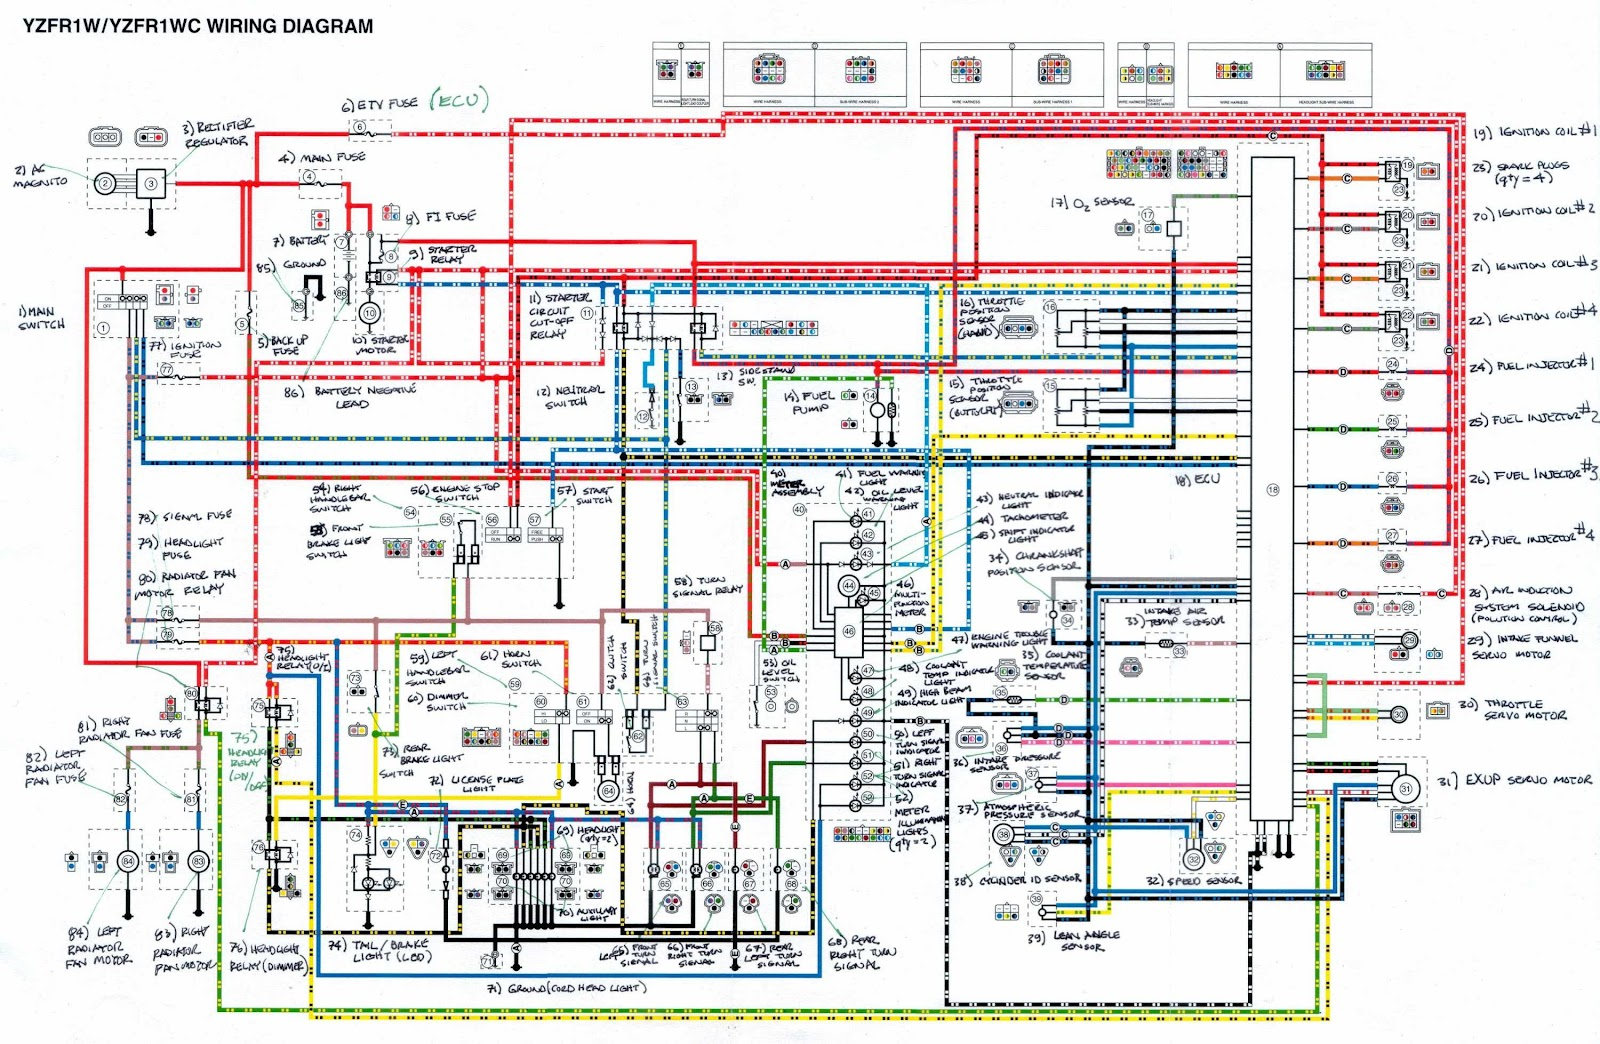 1987 Astro Van Wiring Diagram Will Be A Thing 1991 Chevrolet On 2000 Yamaha V Star 1100 Ignition Get Starter Circuit